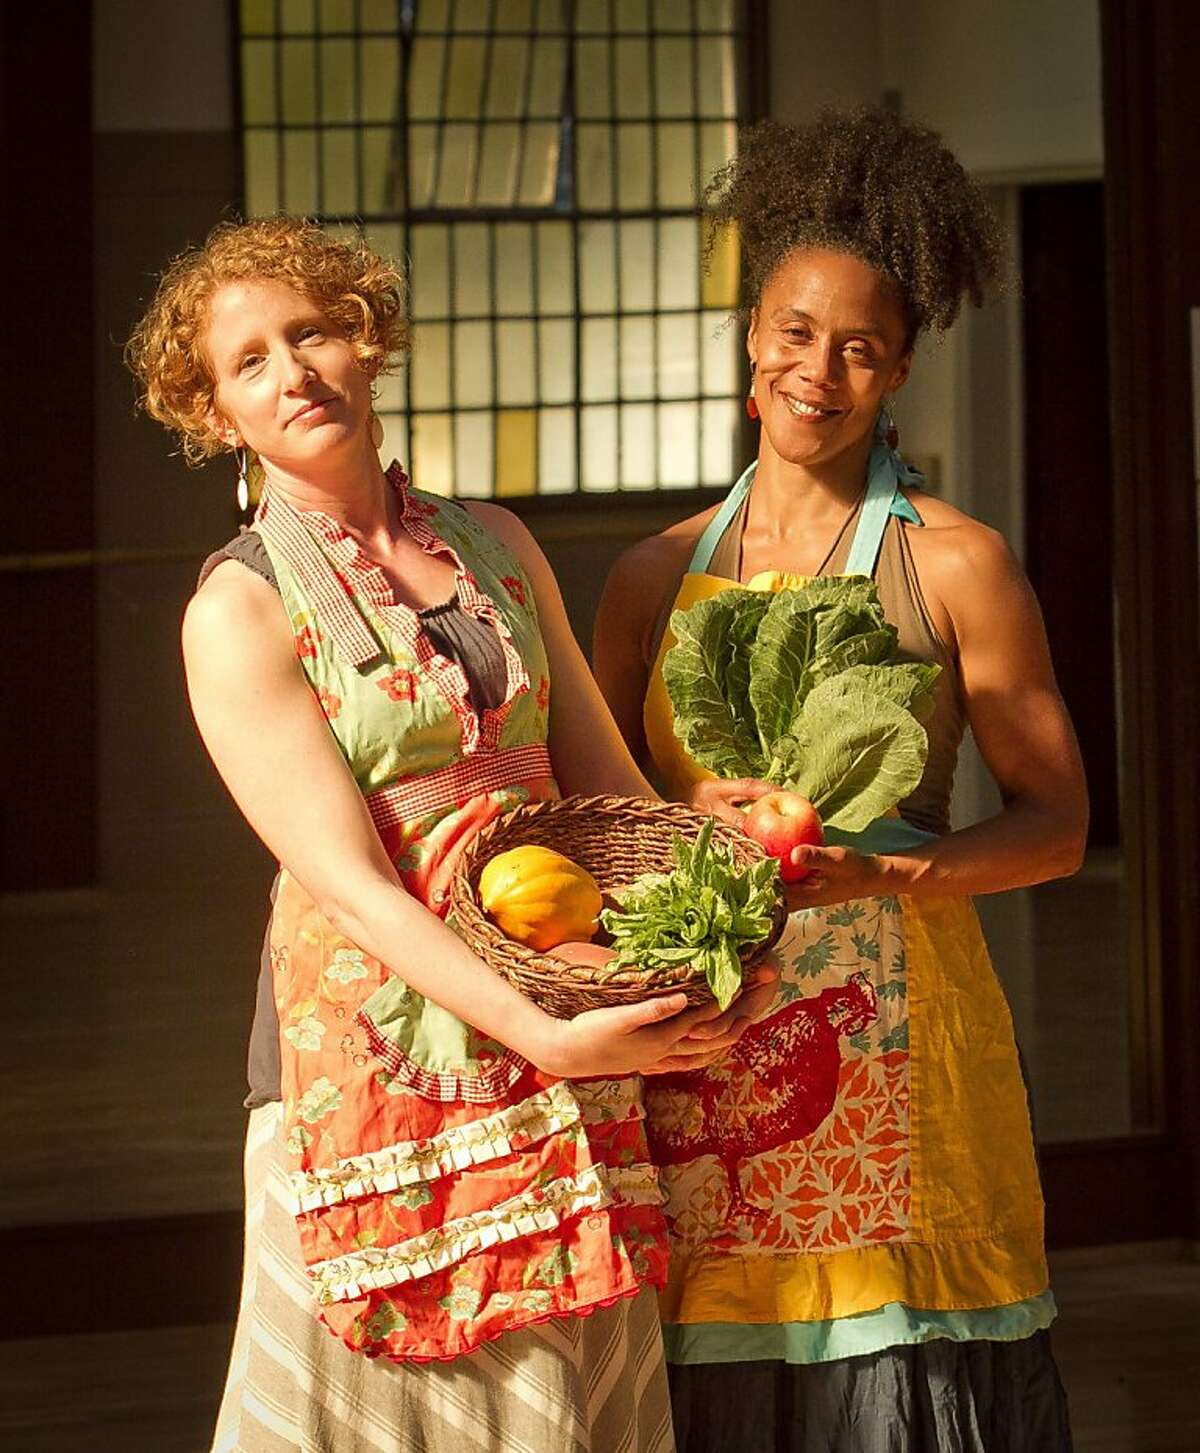 Amara Tabor-Smith, (African American) and Lisa Wymore hold a basket of vegetables at the UC Bancroft Dance Studio in Berkeley, Calif., on Friday, August 24th, 2012. They are holding a dance work shop called